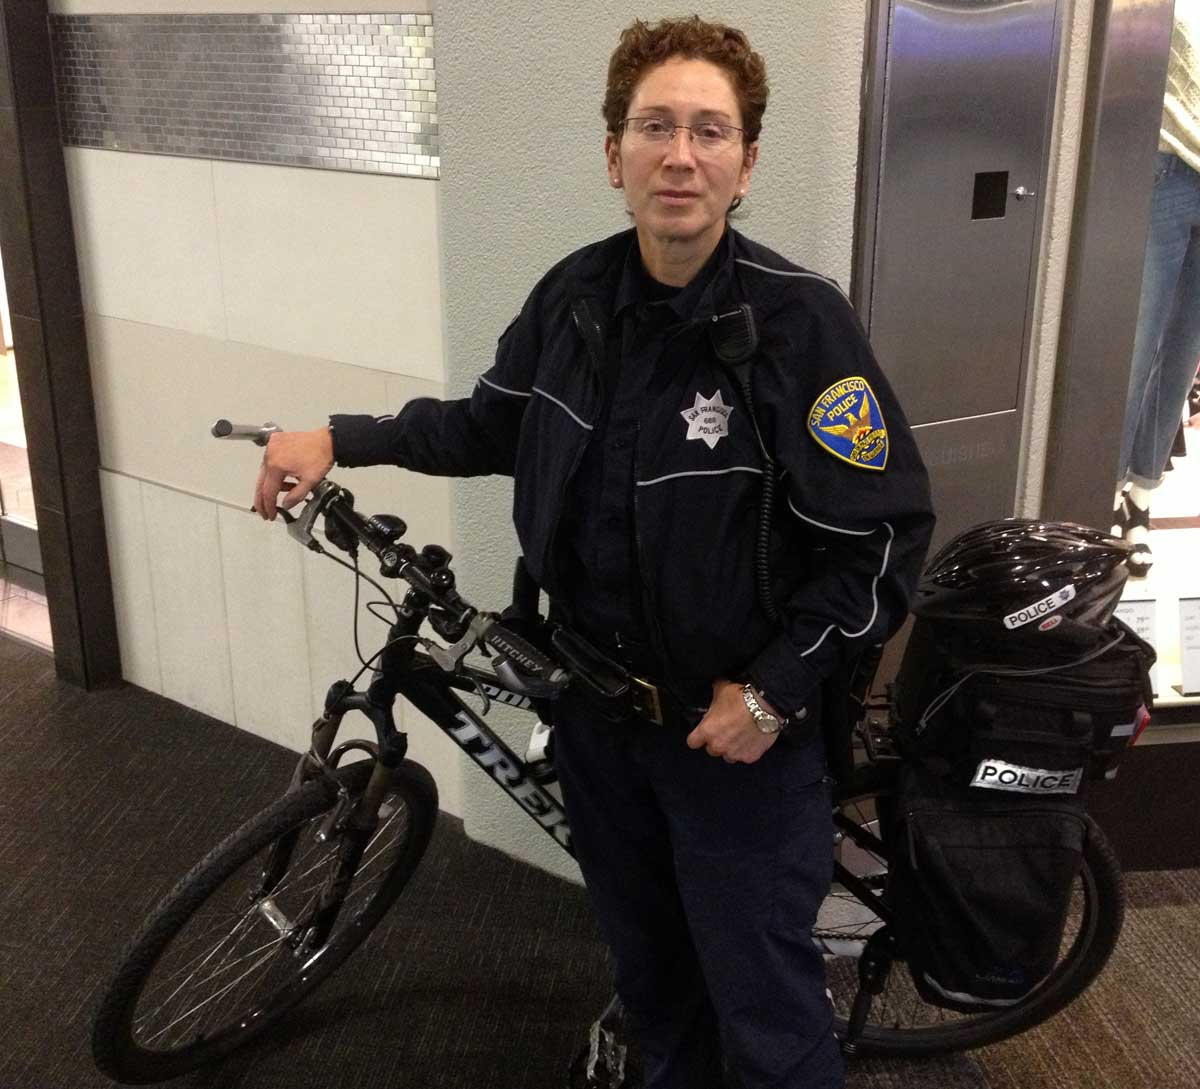 SF SFO PD